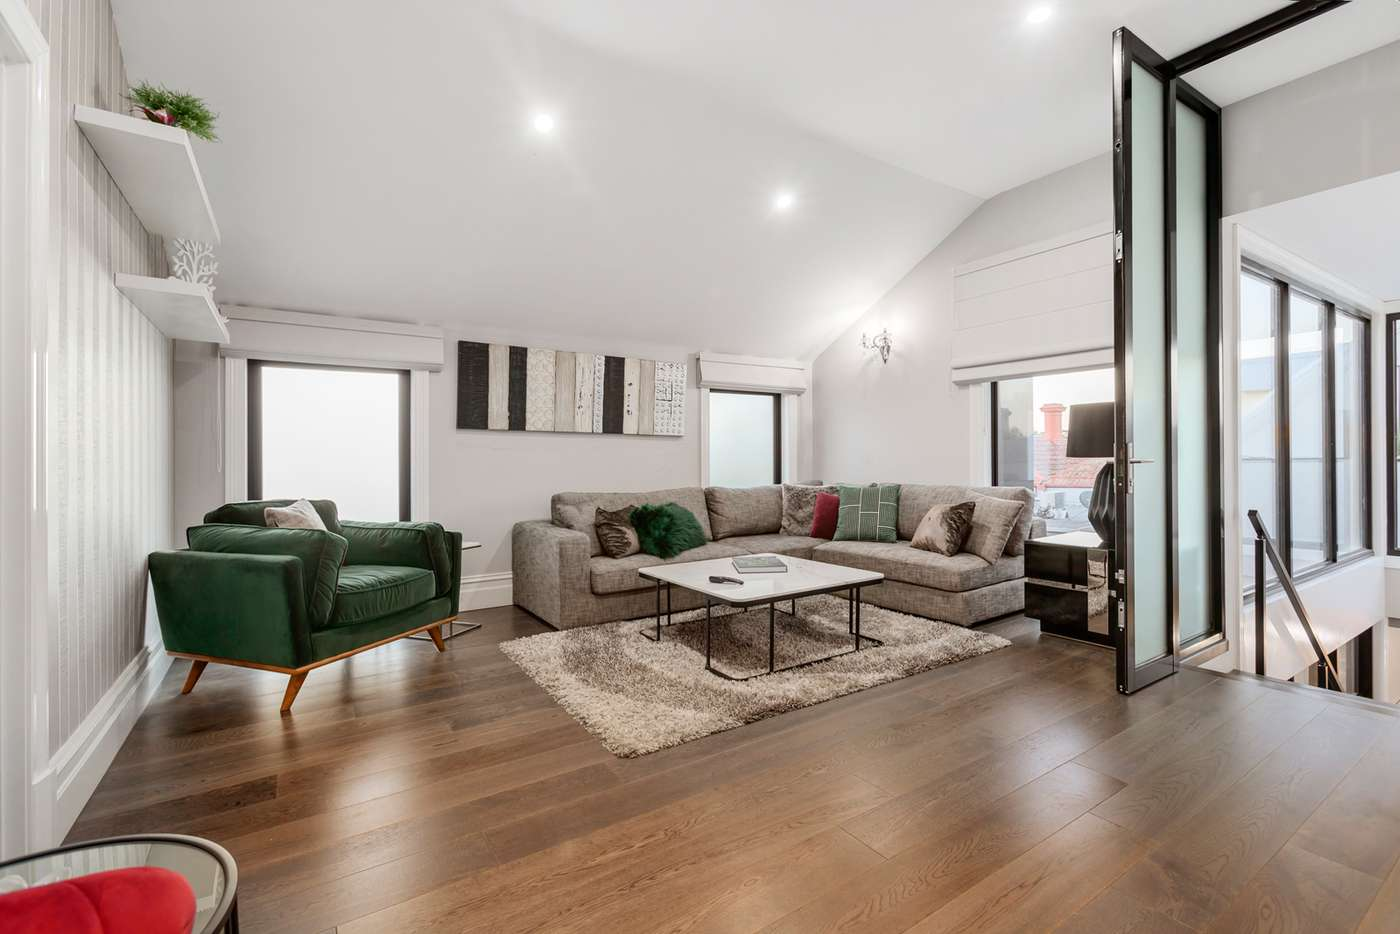 Fifth view of Homely house listing, 52 Wilson Street, Moonee Ponds VIC 3039